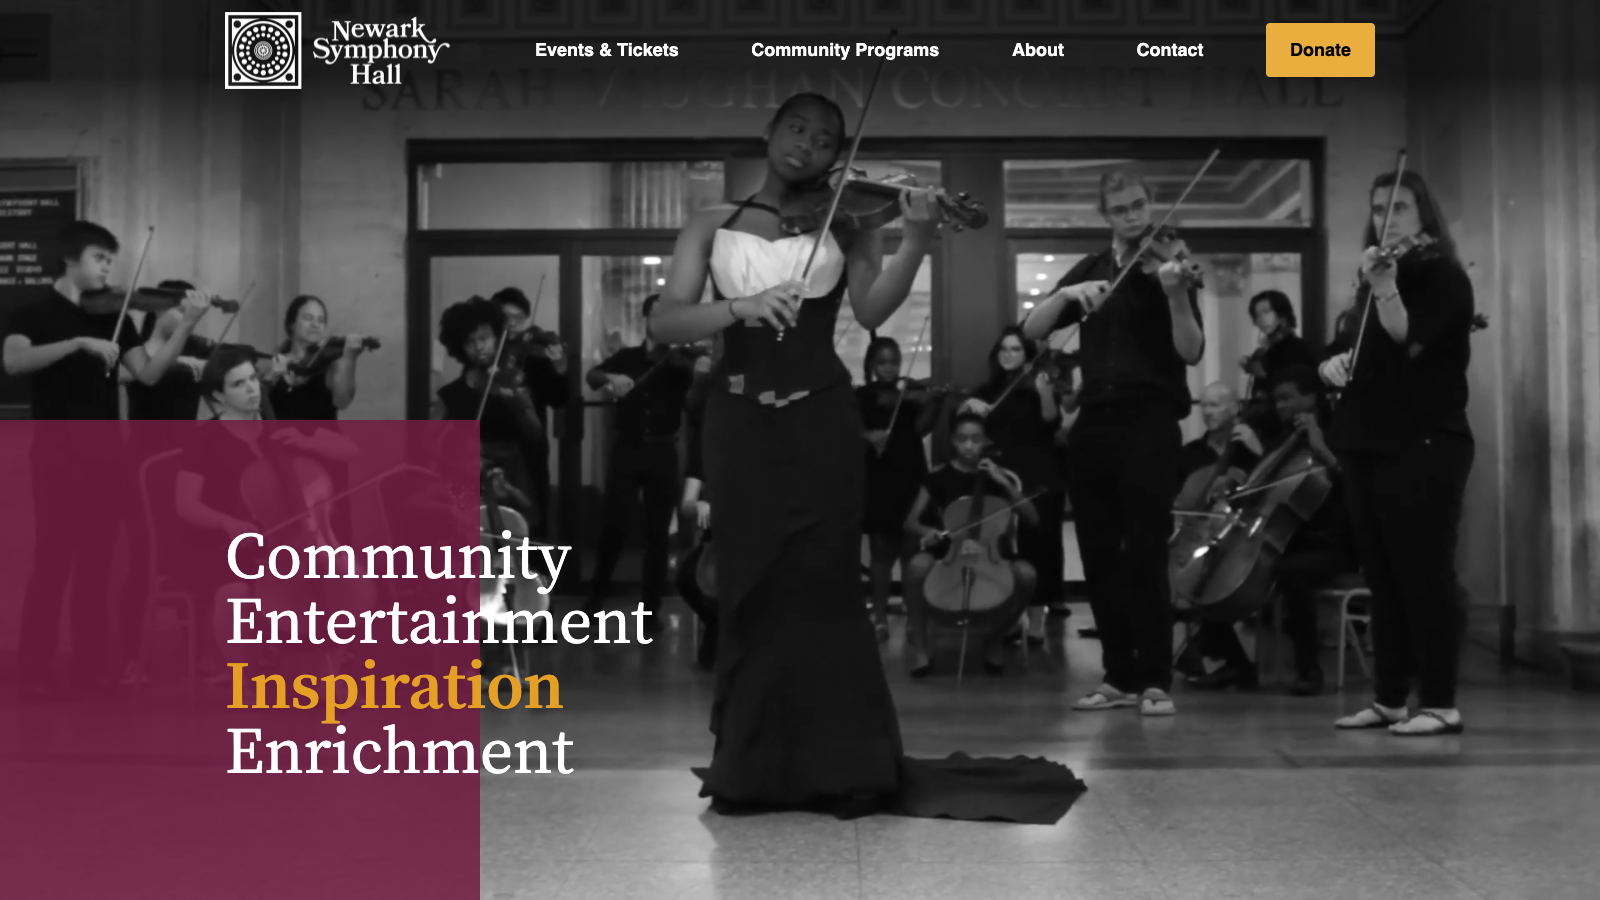 Newark Symphony Hall Website Content Writing Project